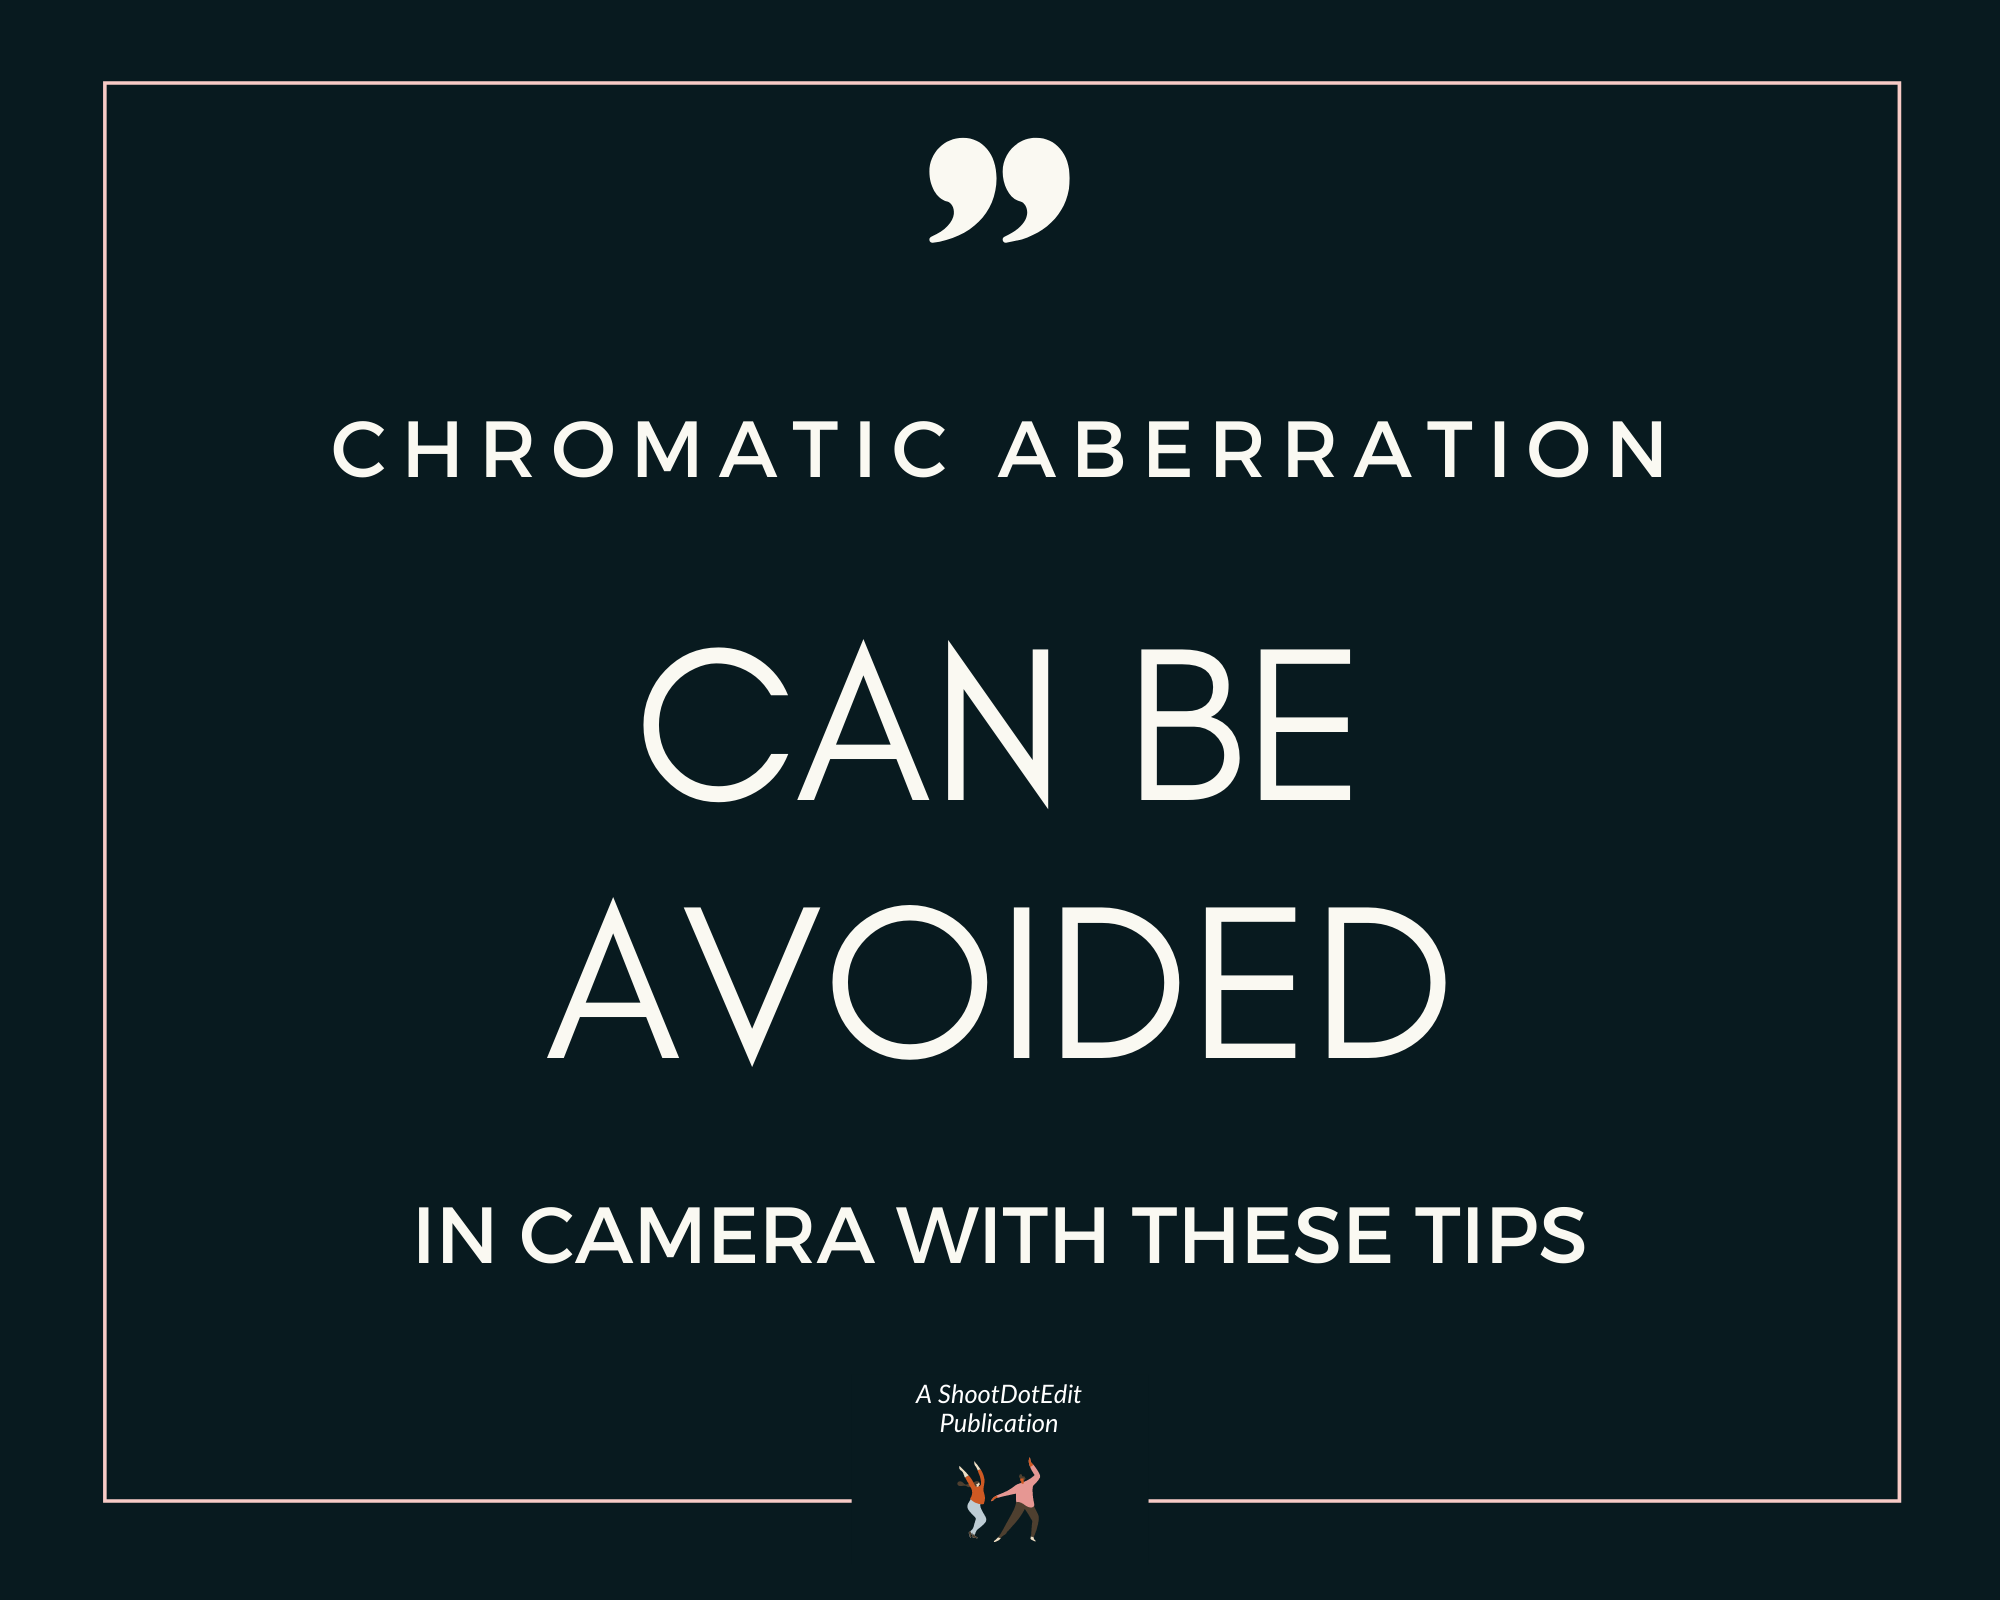 Infographic stating chromatic aberration can be avoided in camera with these tips